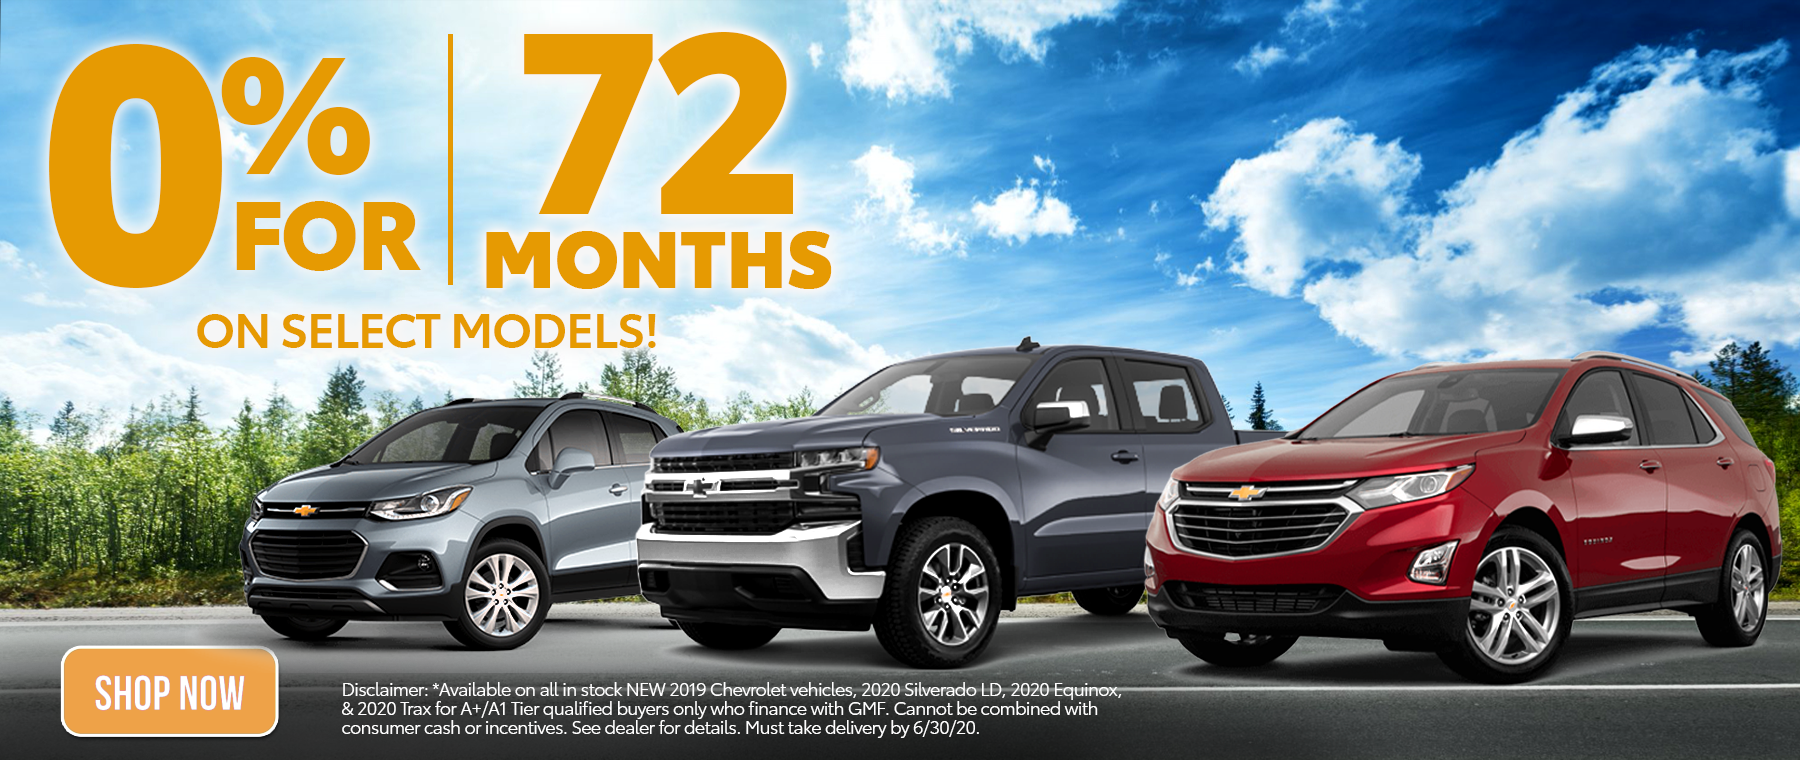 0% APR for 72 Months June 2020 Offer